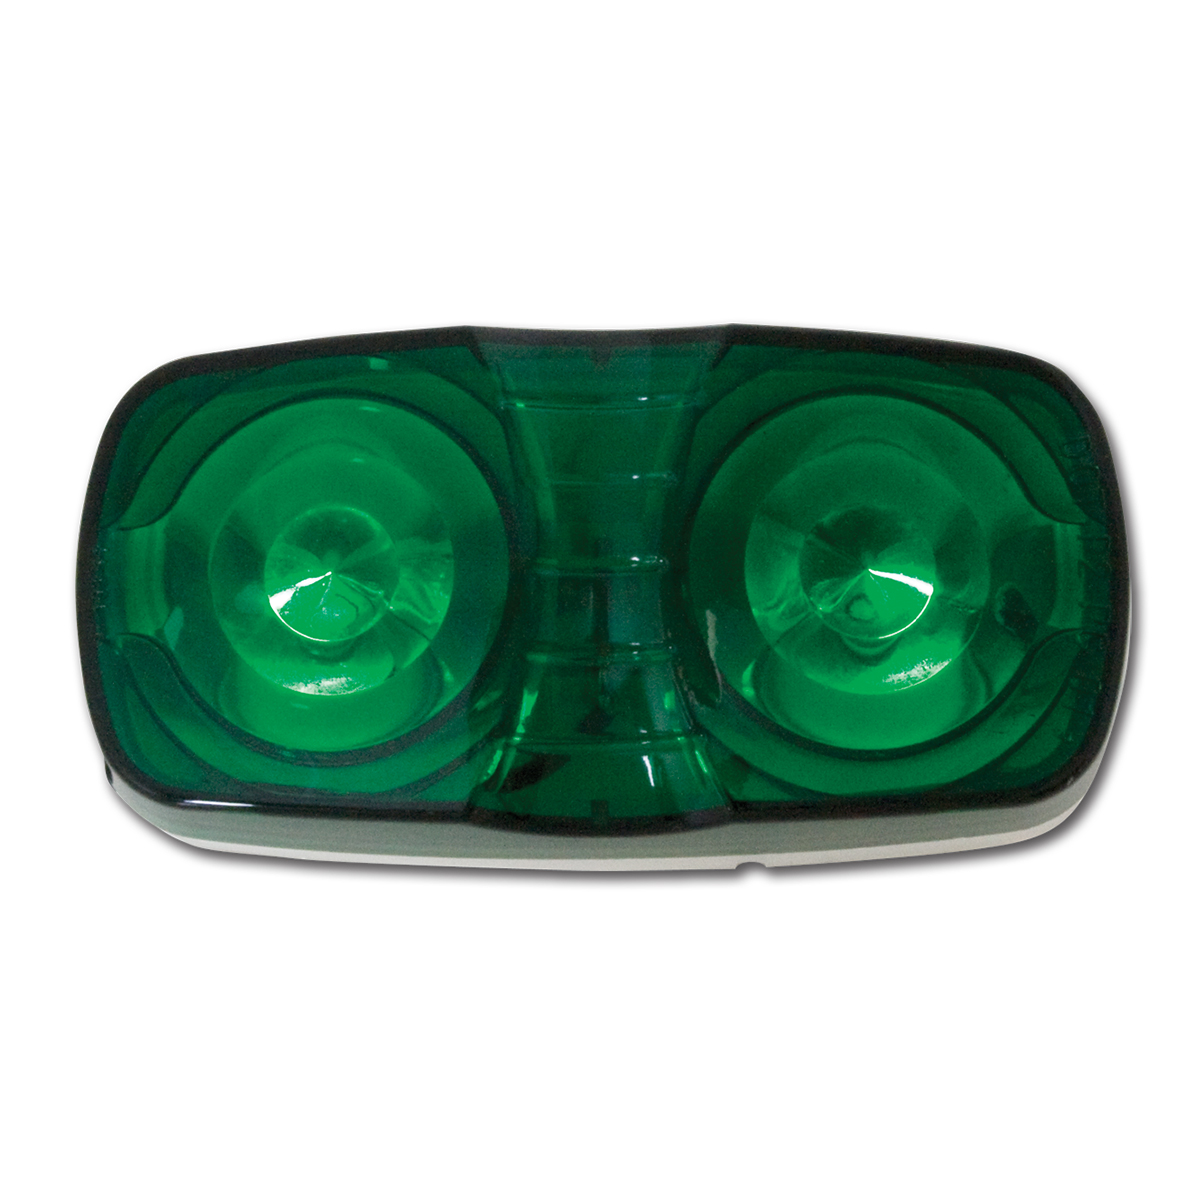 #82923 Tiger Eye Two-Bulb Green Light with White Plastic Base